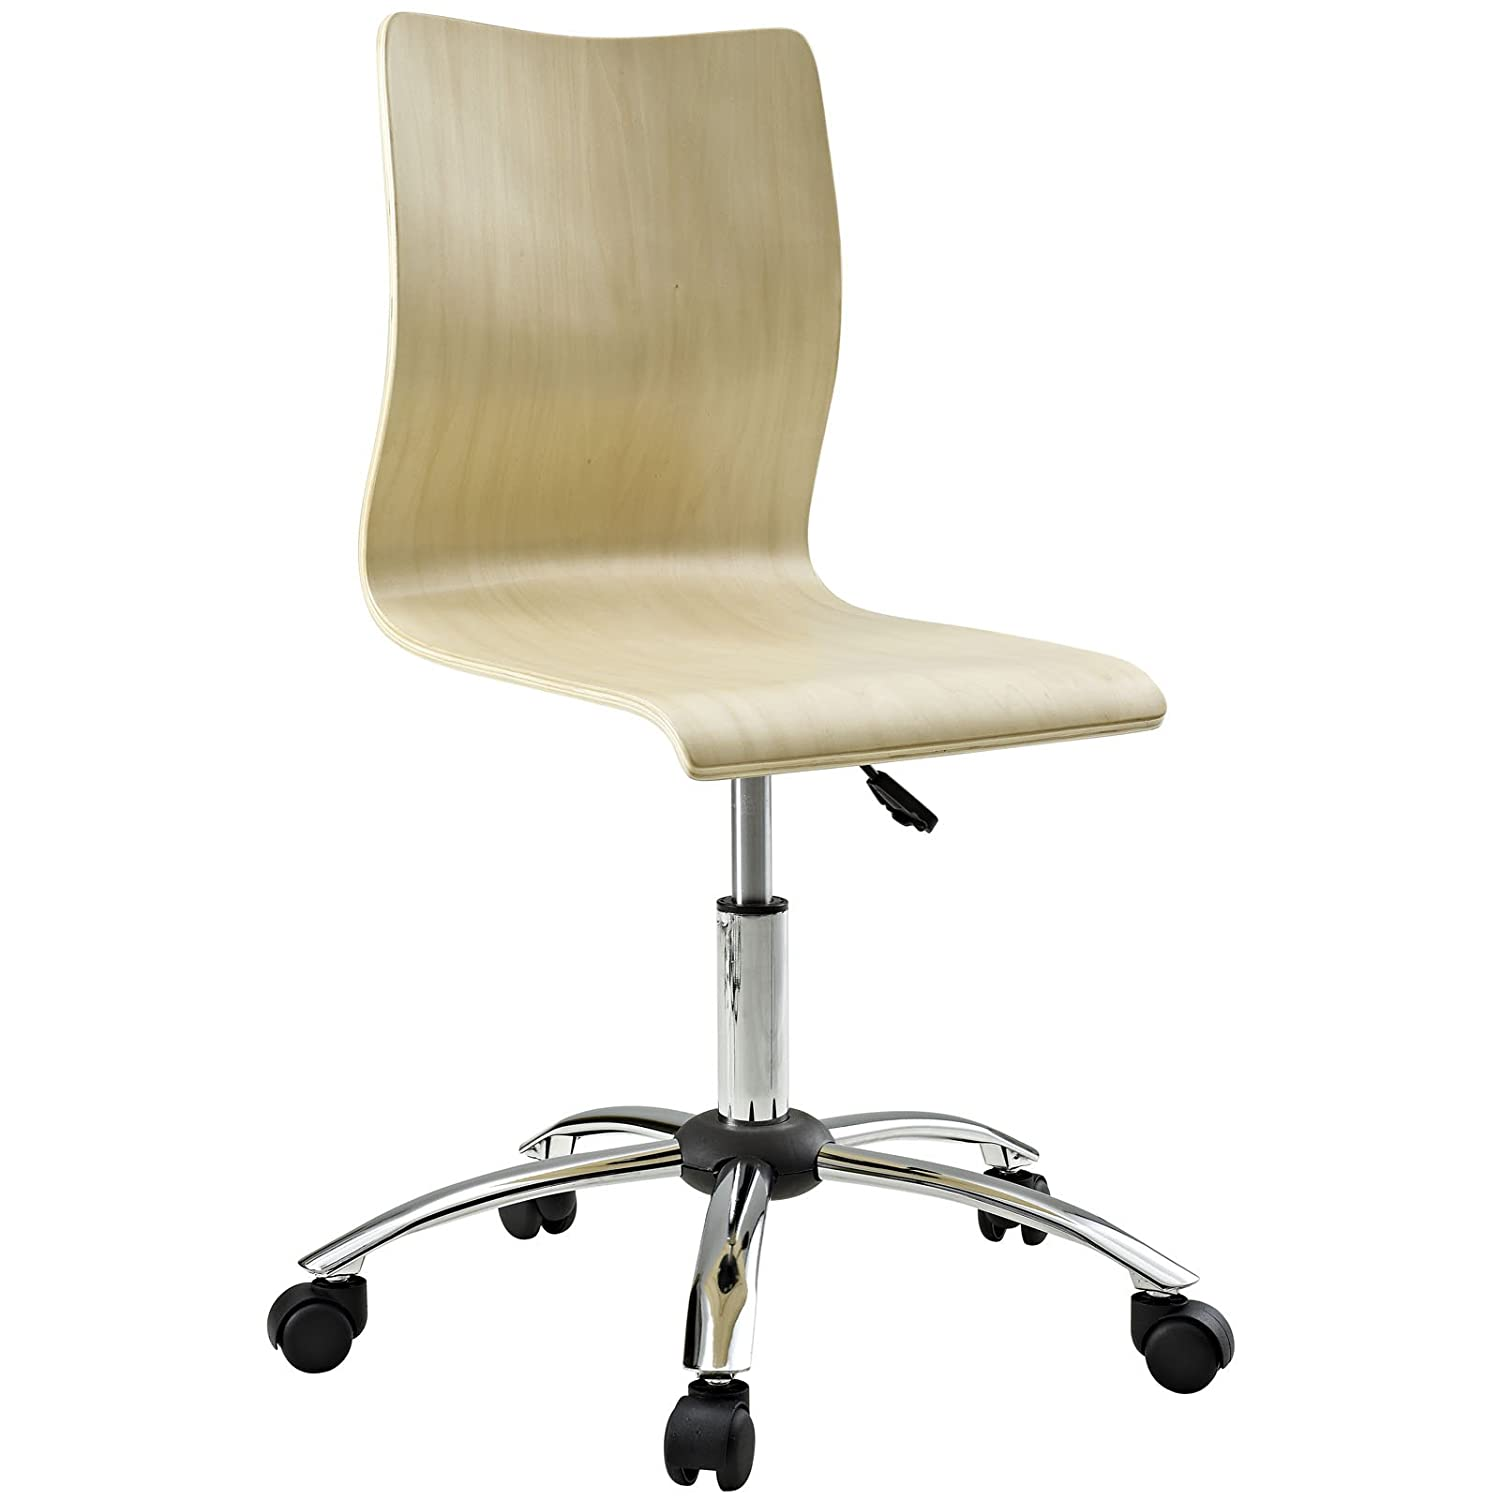 Amazon.com: Modway Fashion Plywood Swivel Office Chair in Natural ...